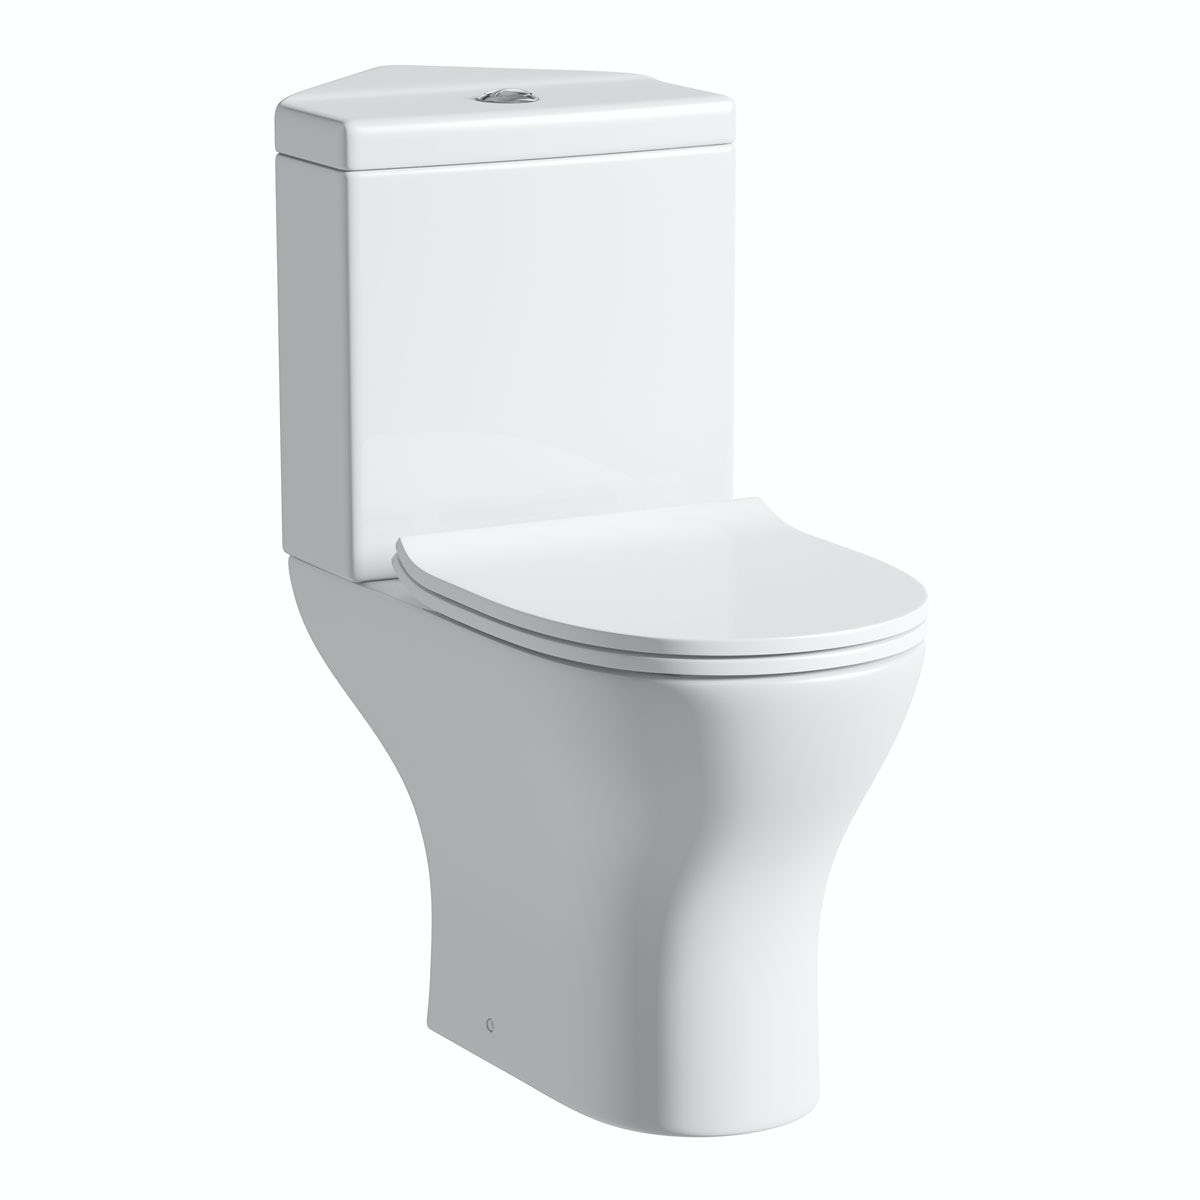 Orchard Derwent Round Compact Corner Close Coupled Toilet With Slimline Soft Close Toilet Seat